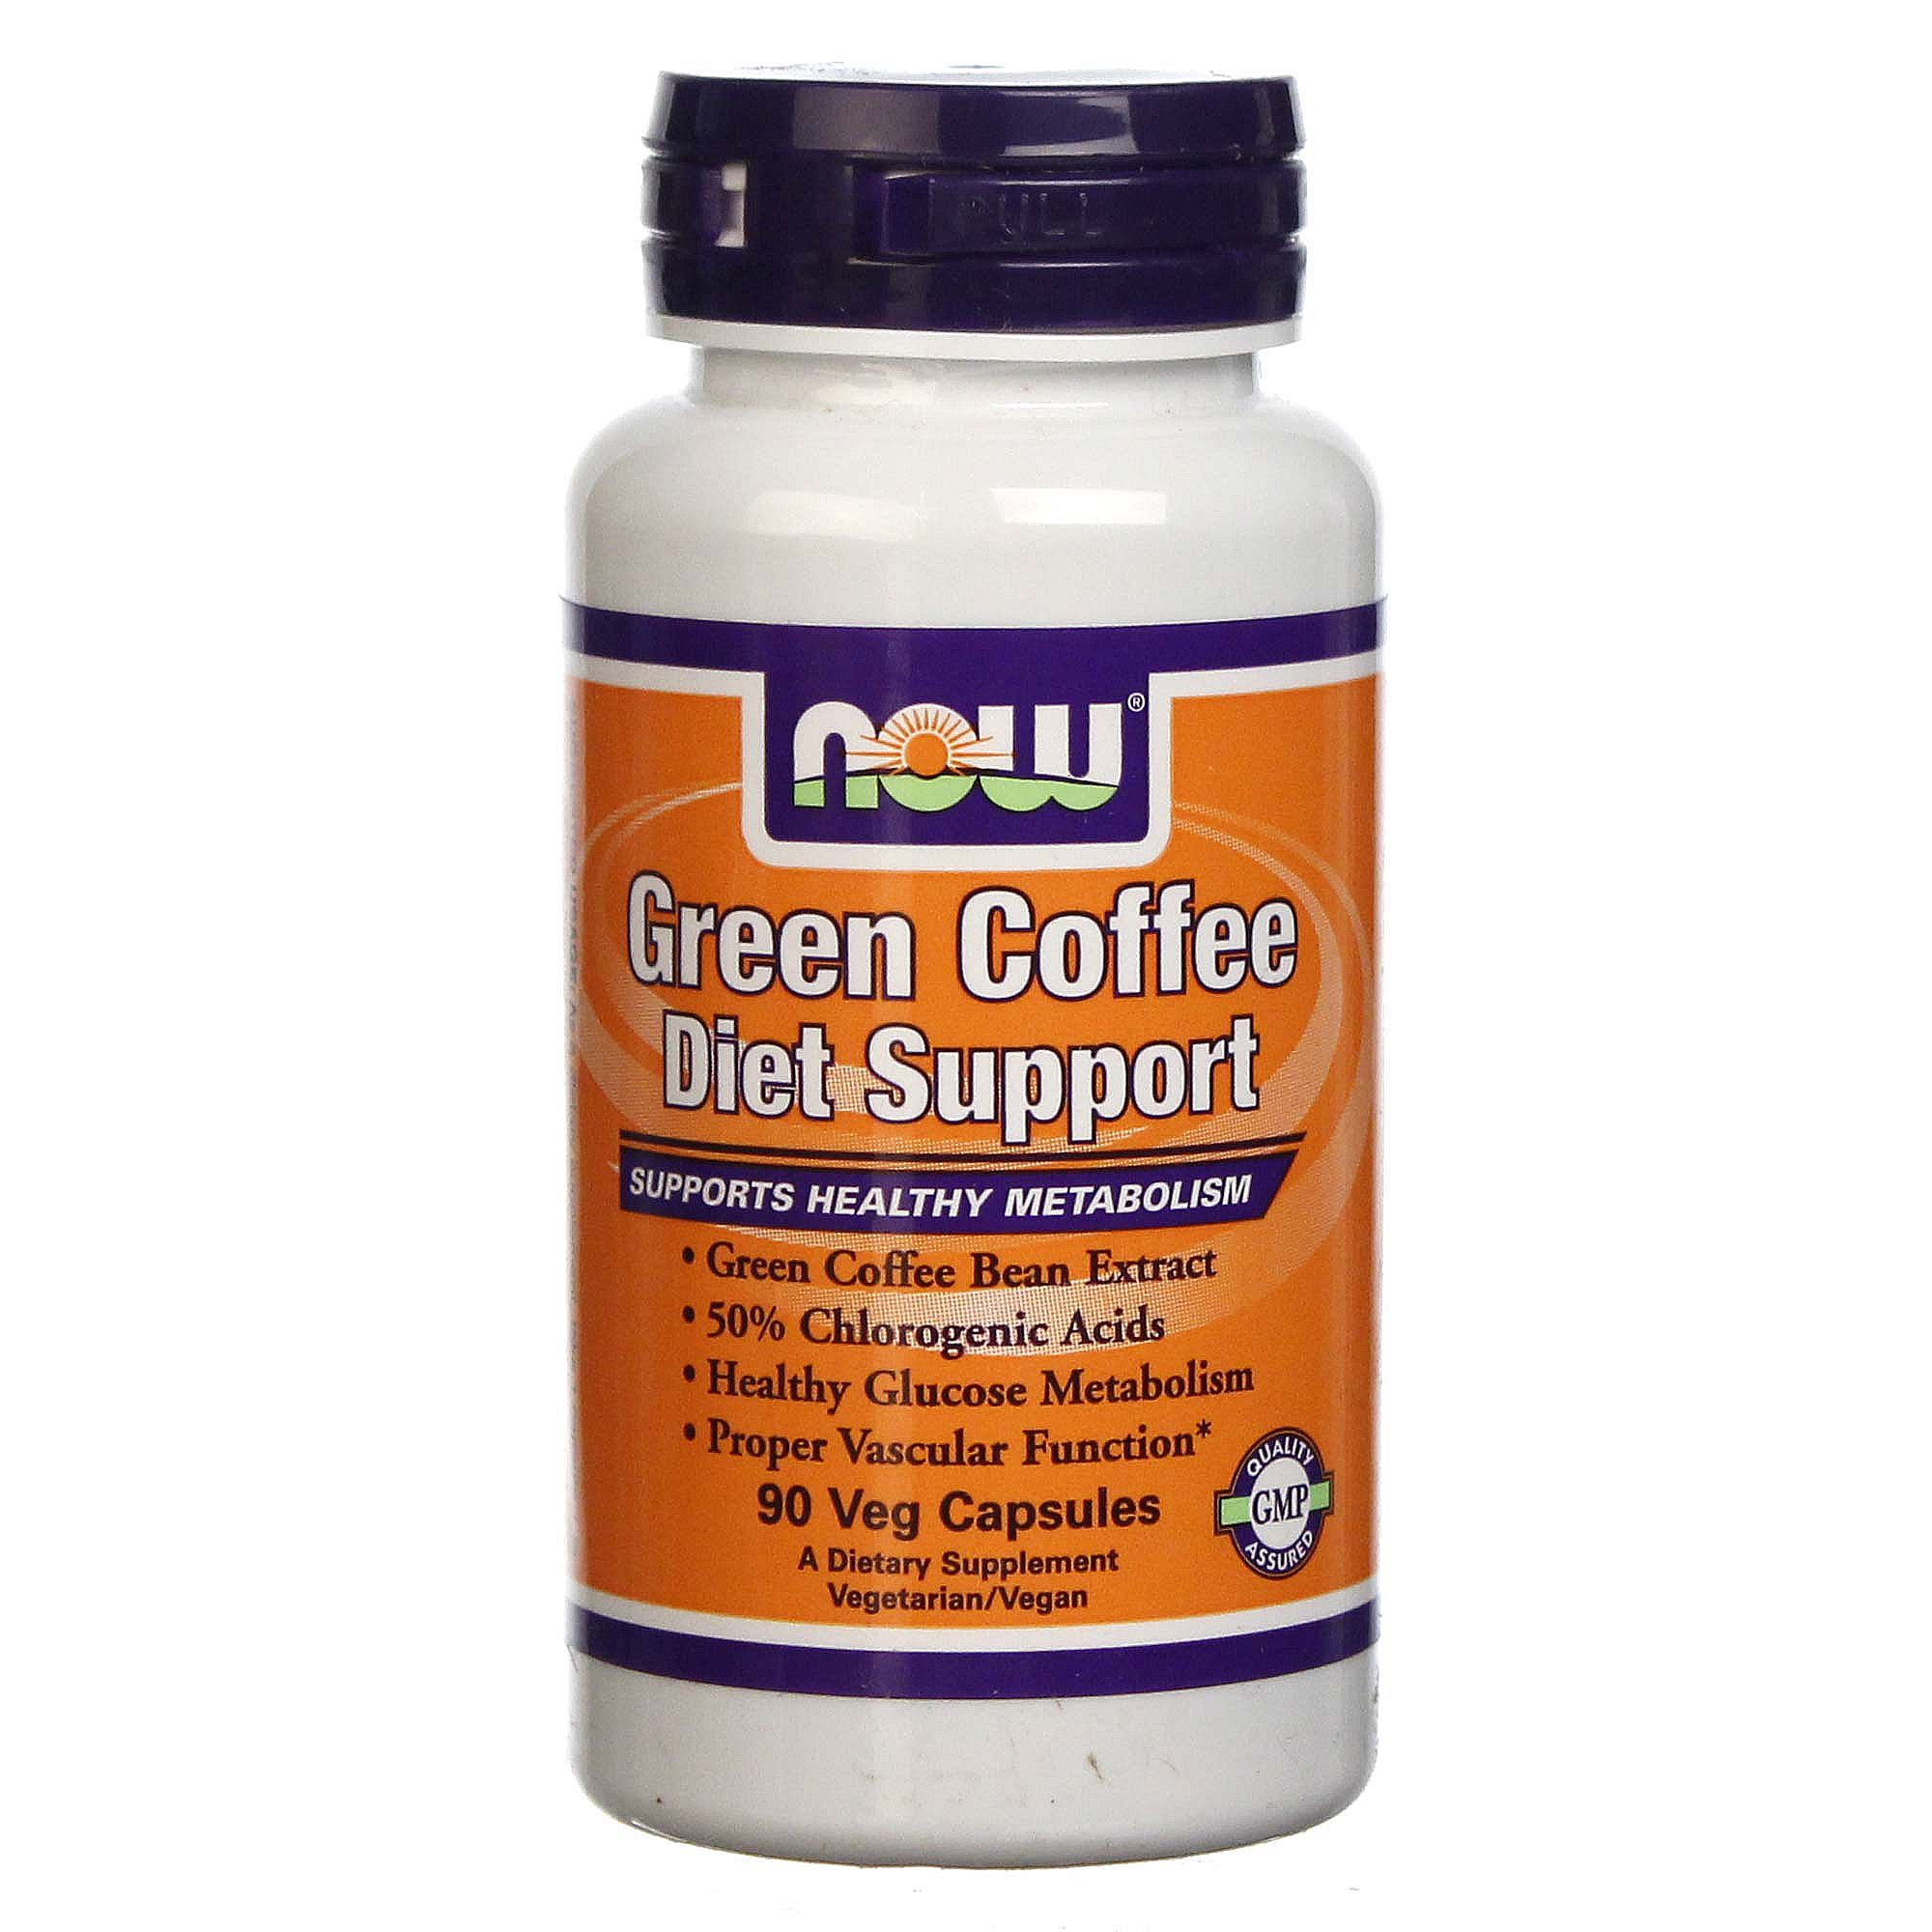 Green Coffee Powder For Weight Loss – Does It Work?